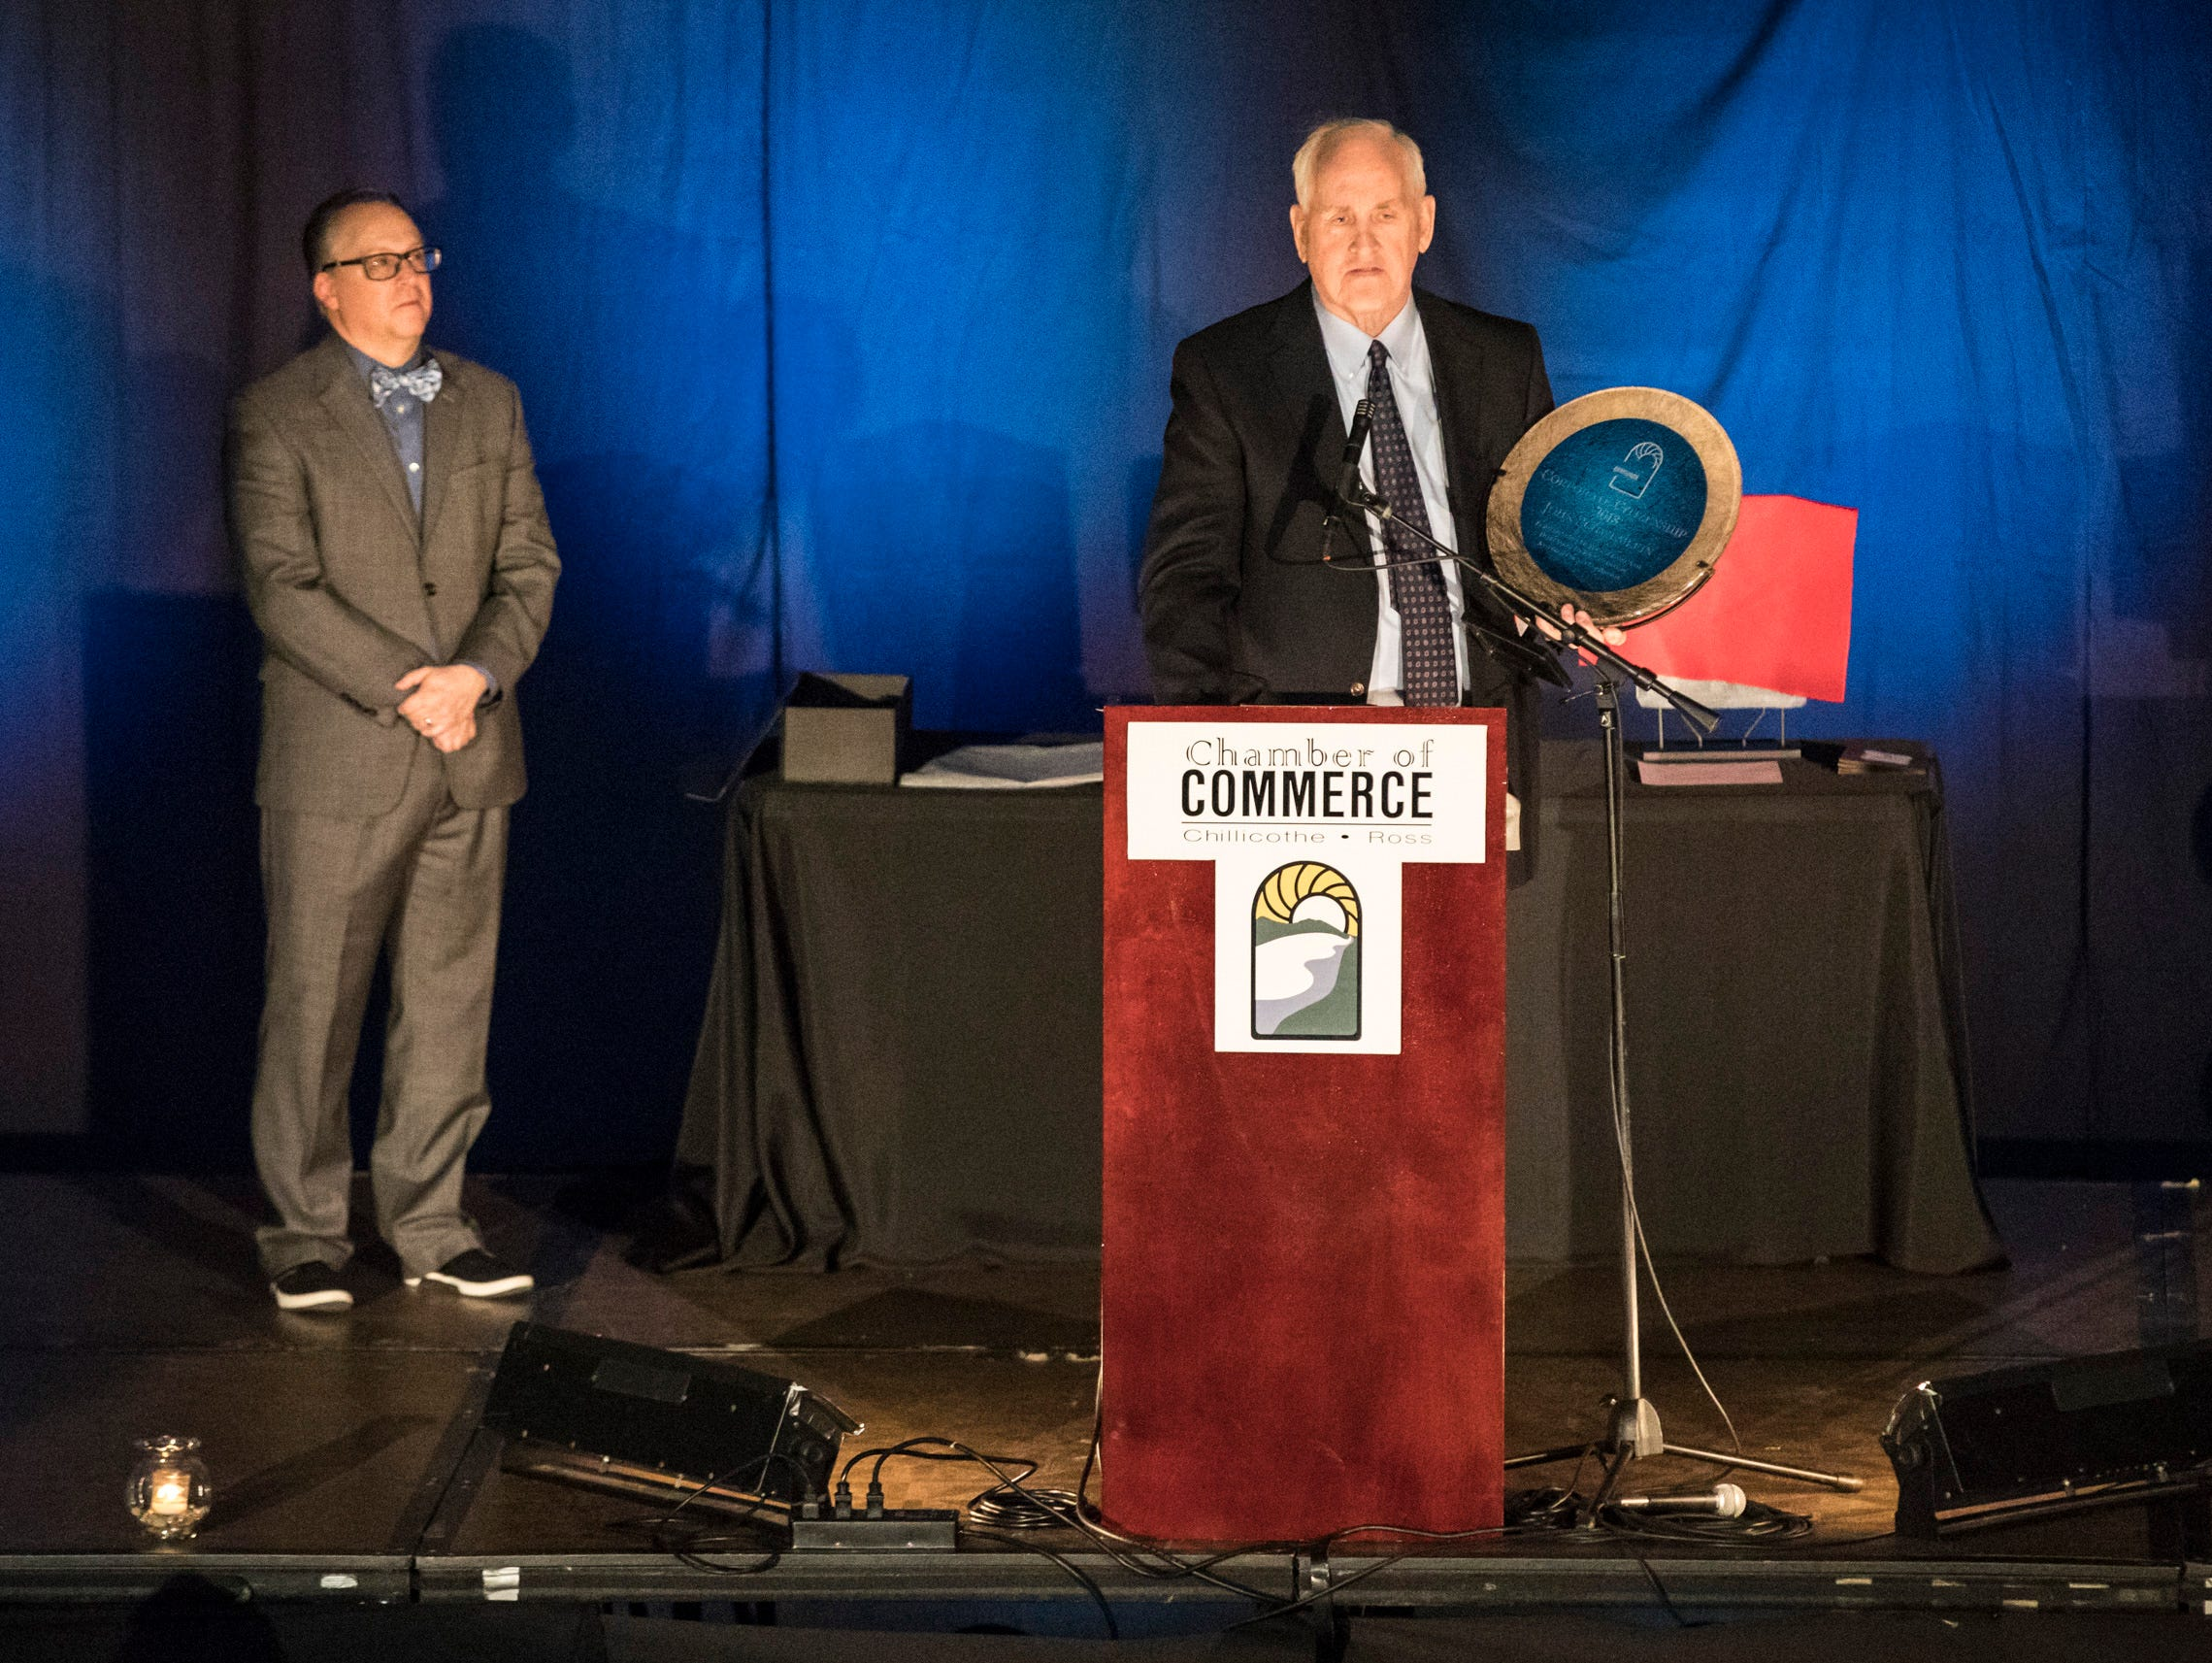 The Corporate Citizenship Award was presented to Janney Montgomery Scott at the 2019 Chillicothe and Ross County Chamber of Commerce annual meeting on March 12, 2019.